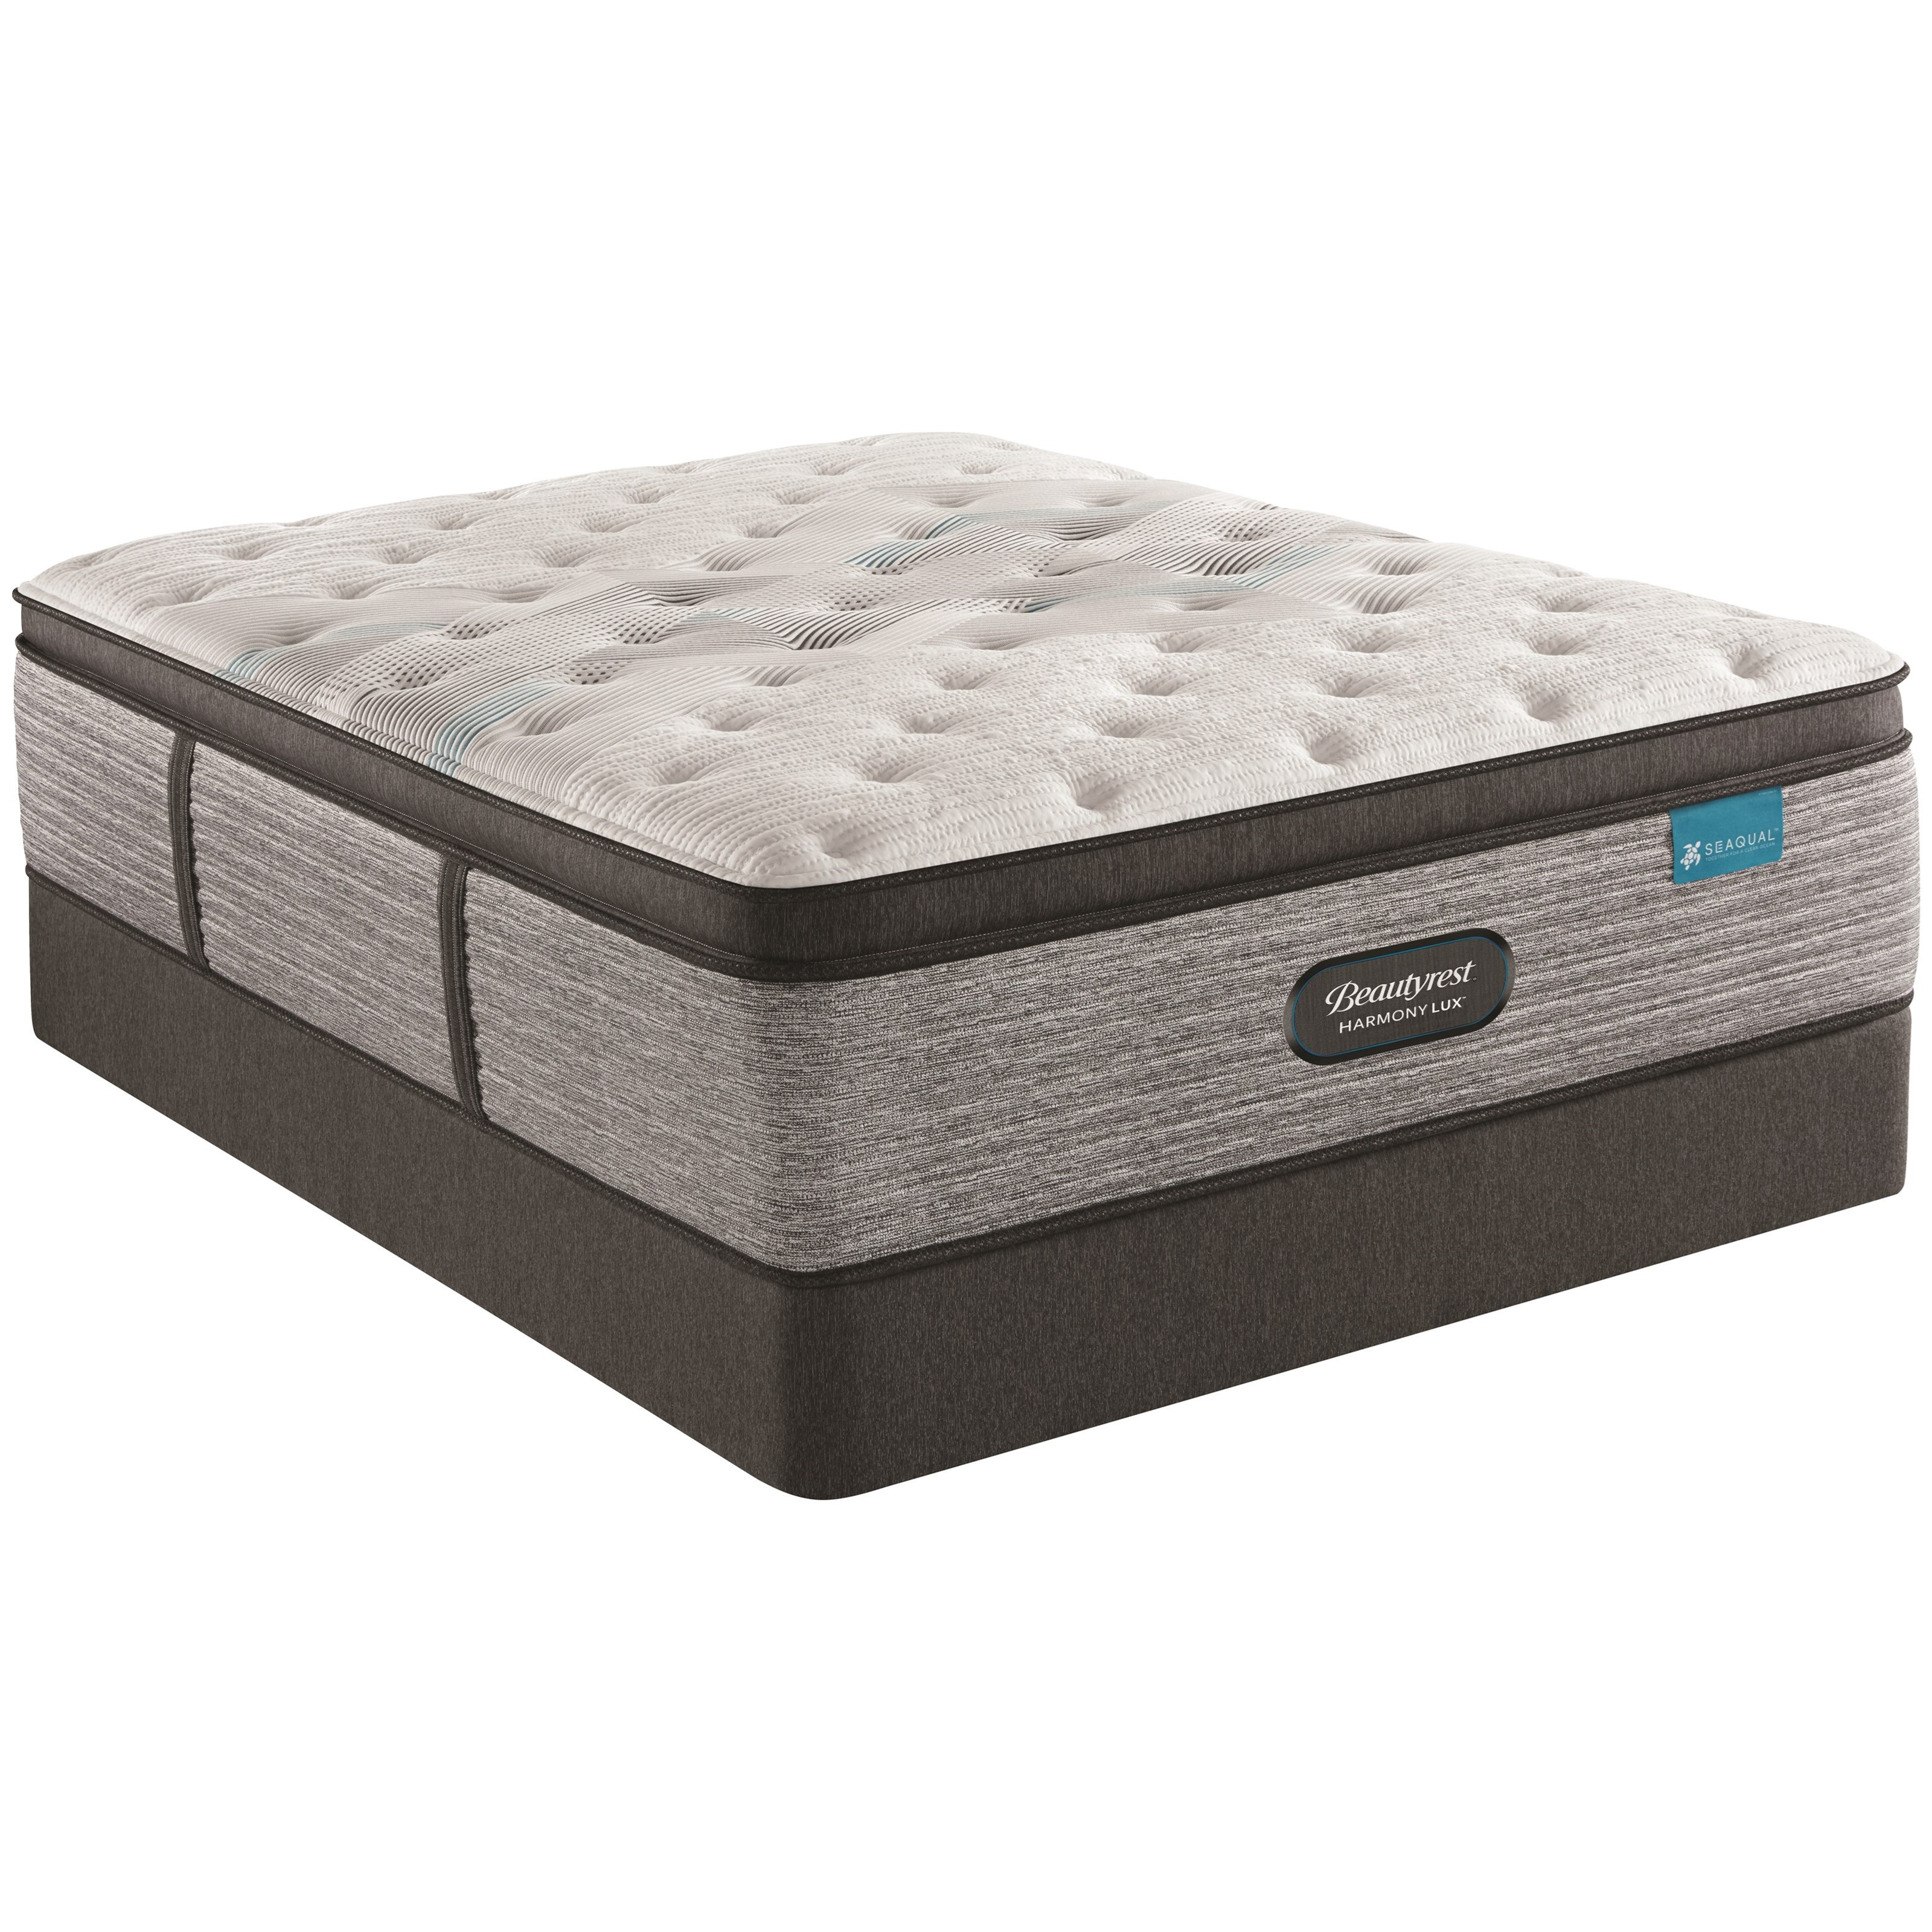 "Carbon Series Medium PT Twin 15 3/4"" Medium PT Mattress Set by Beautyrest at Johnny Janosik"